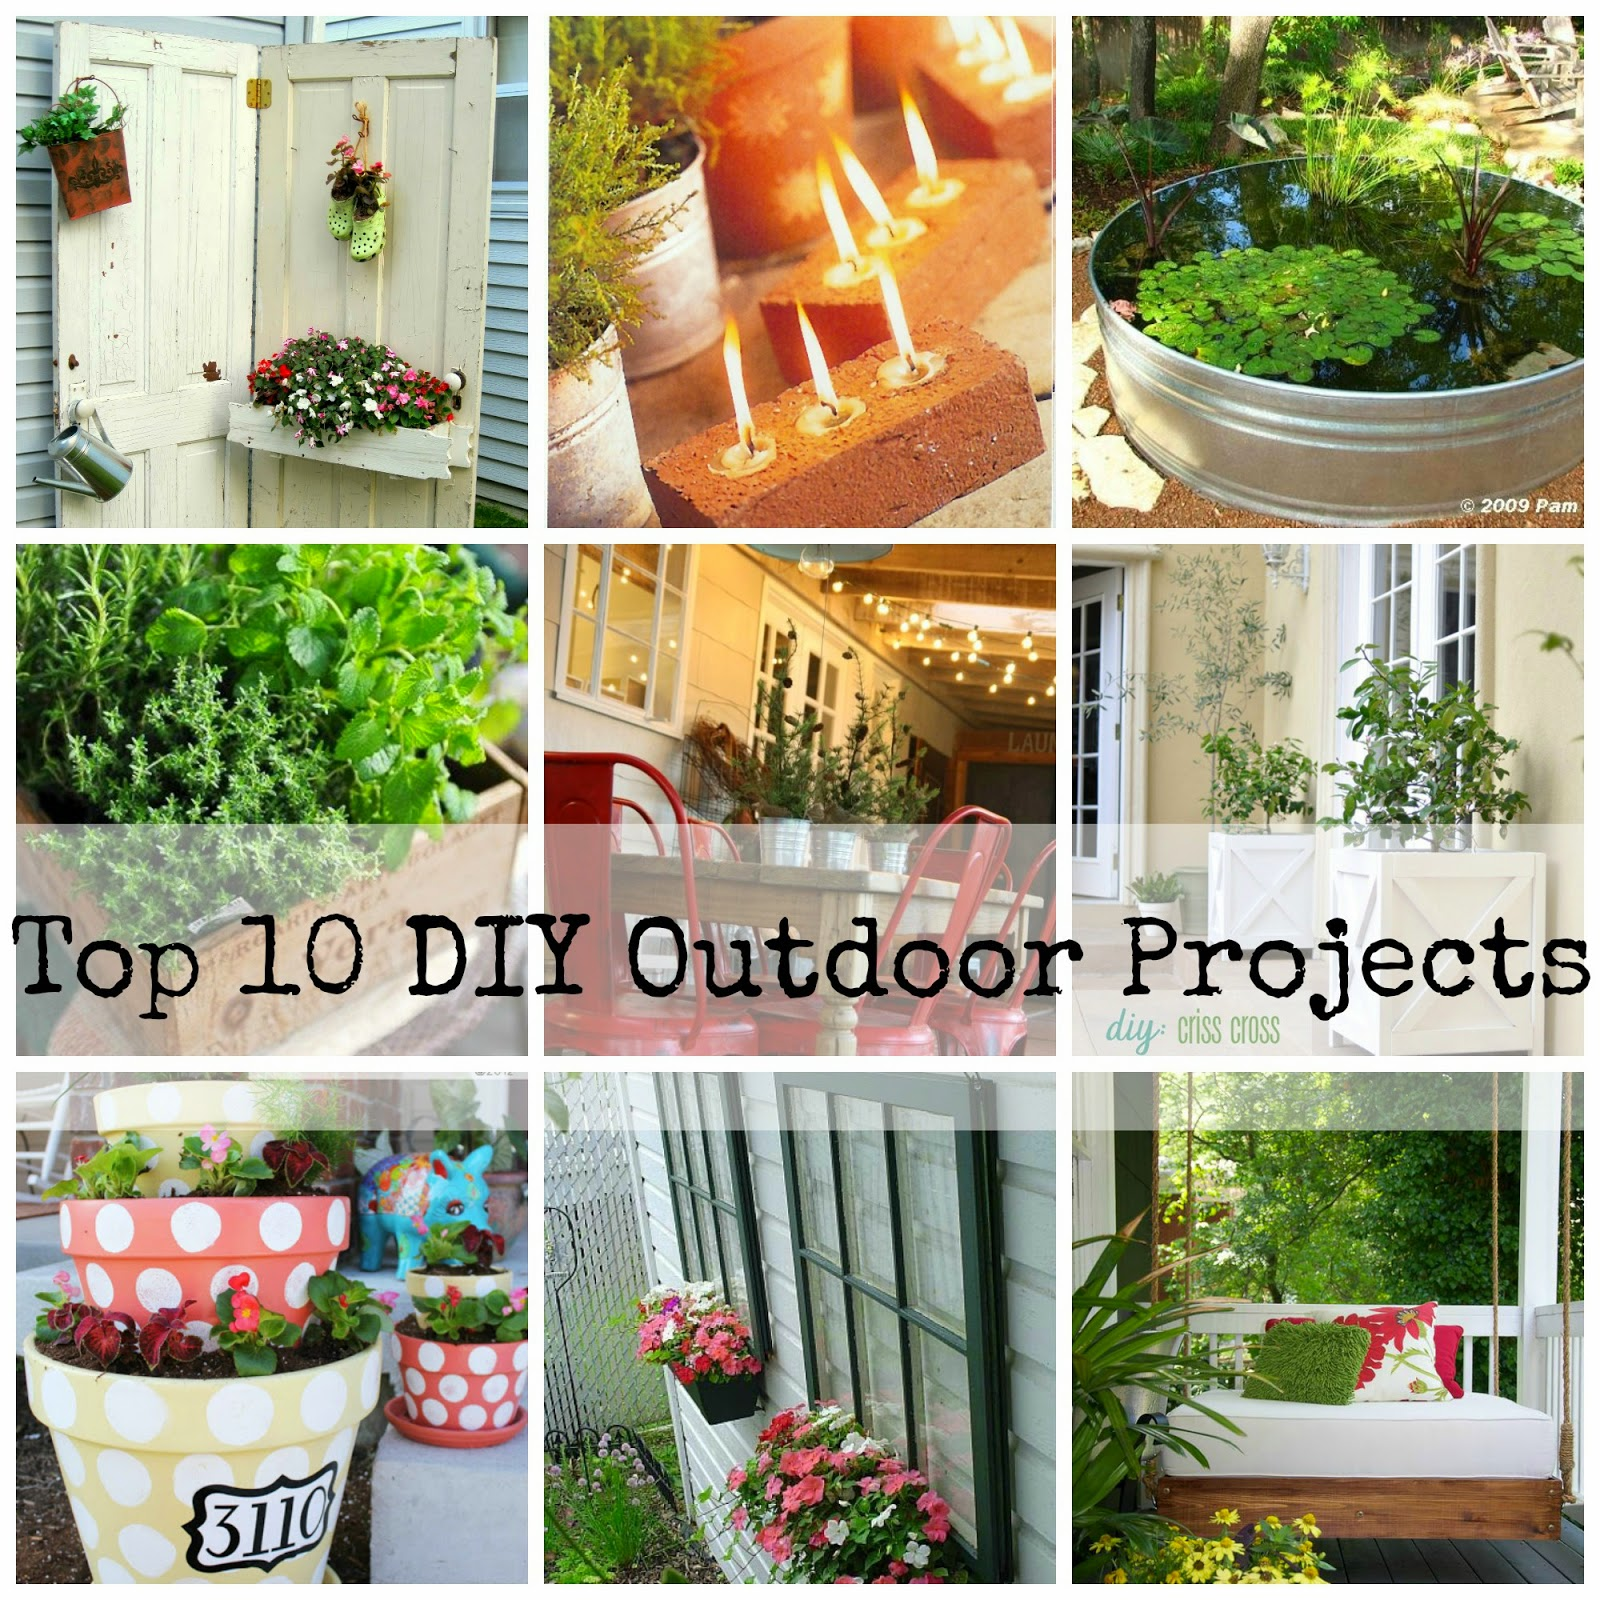 http://thenewmrsadventures.blogspot.com/2014/03/top-10-outdoor-diy-projects.html#.VKhCut5Z-uc